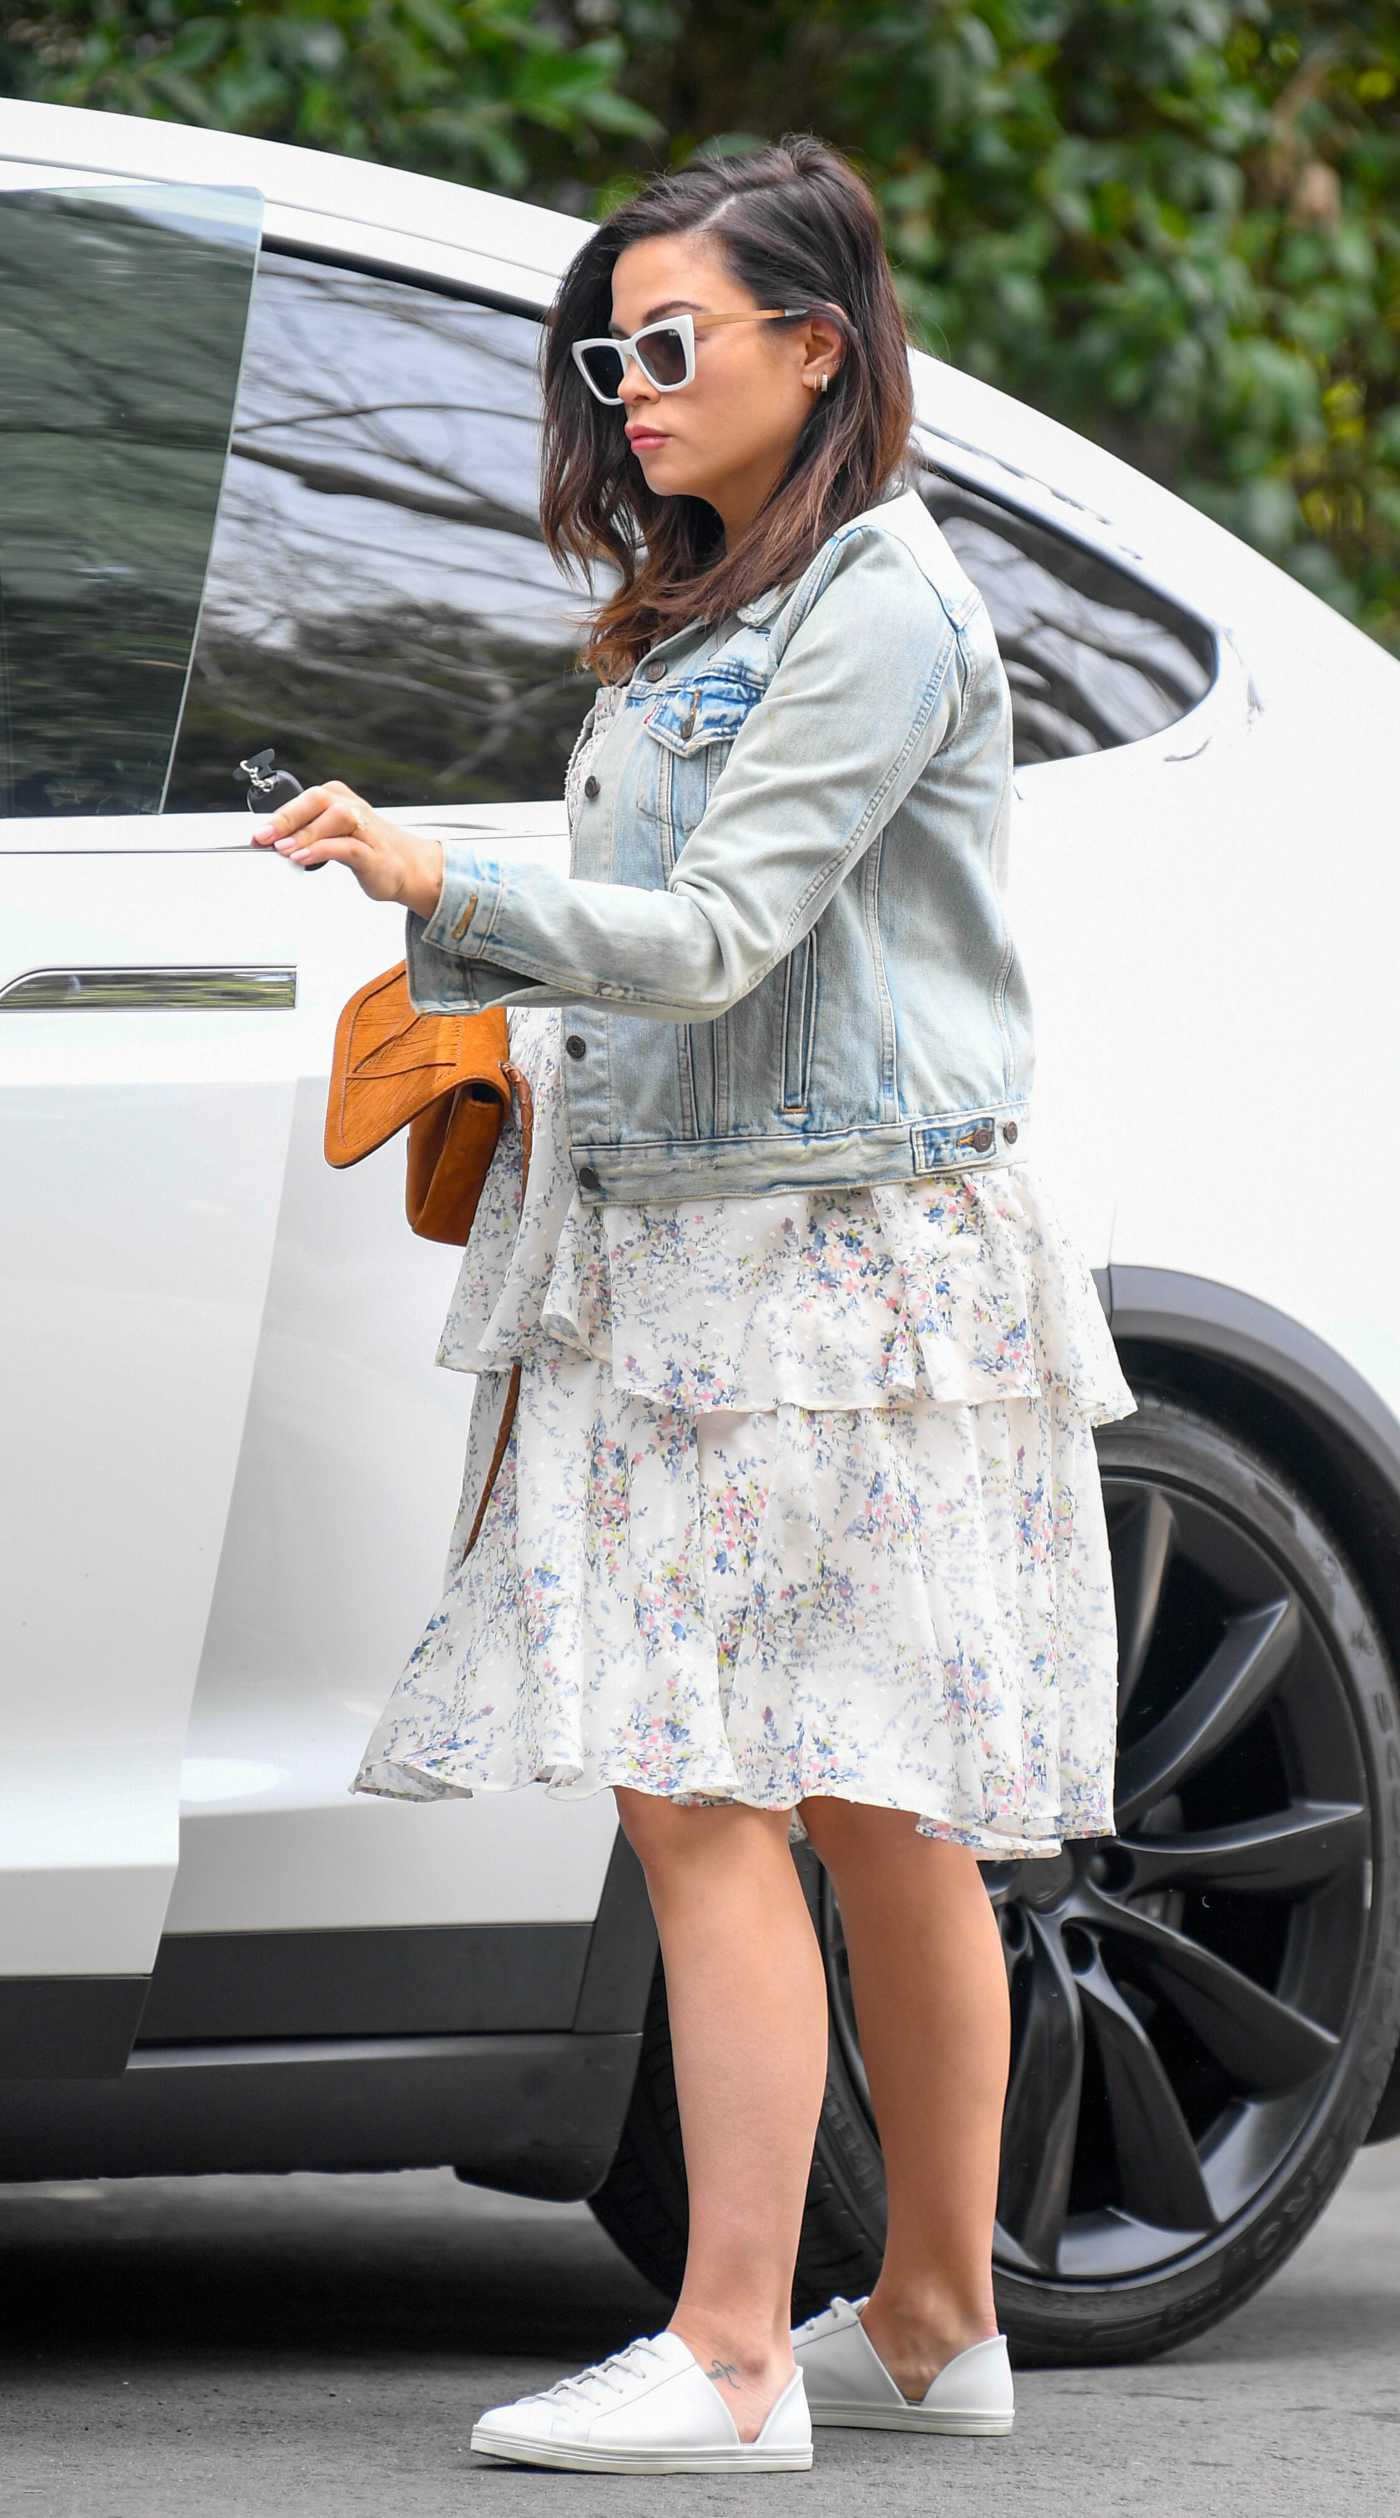 Jenna Dewan in a Blue Denim Jacket Was Seen Out in Los Angeles 02/27/2020